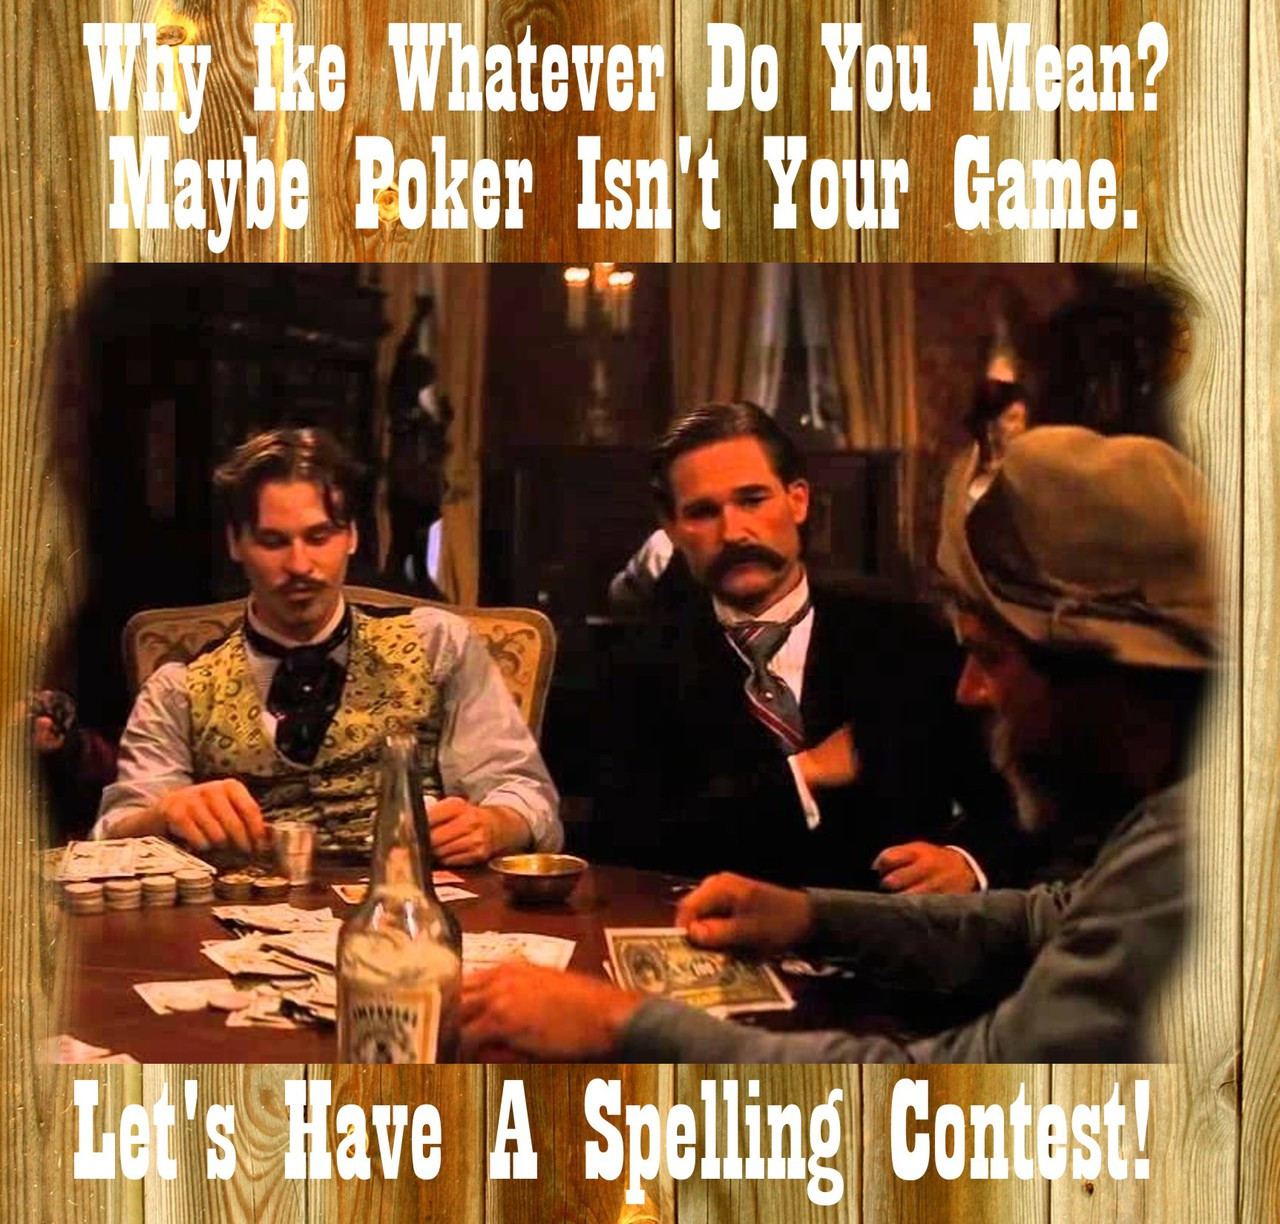 Doc Holliday Quotes From The Movie Tombstone: Tombstone Movie Why Ike Whatever Do You Mean, Let' Have A